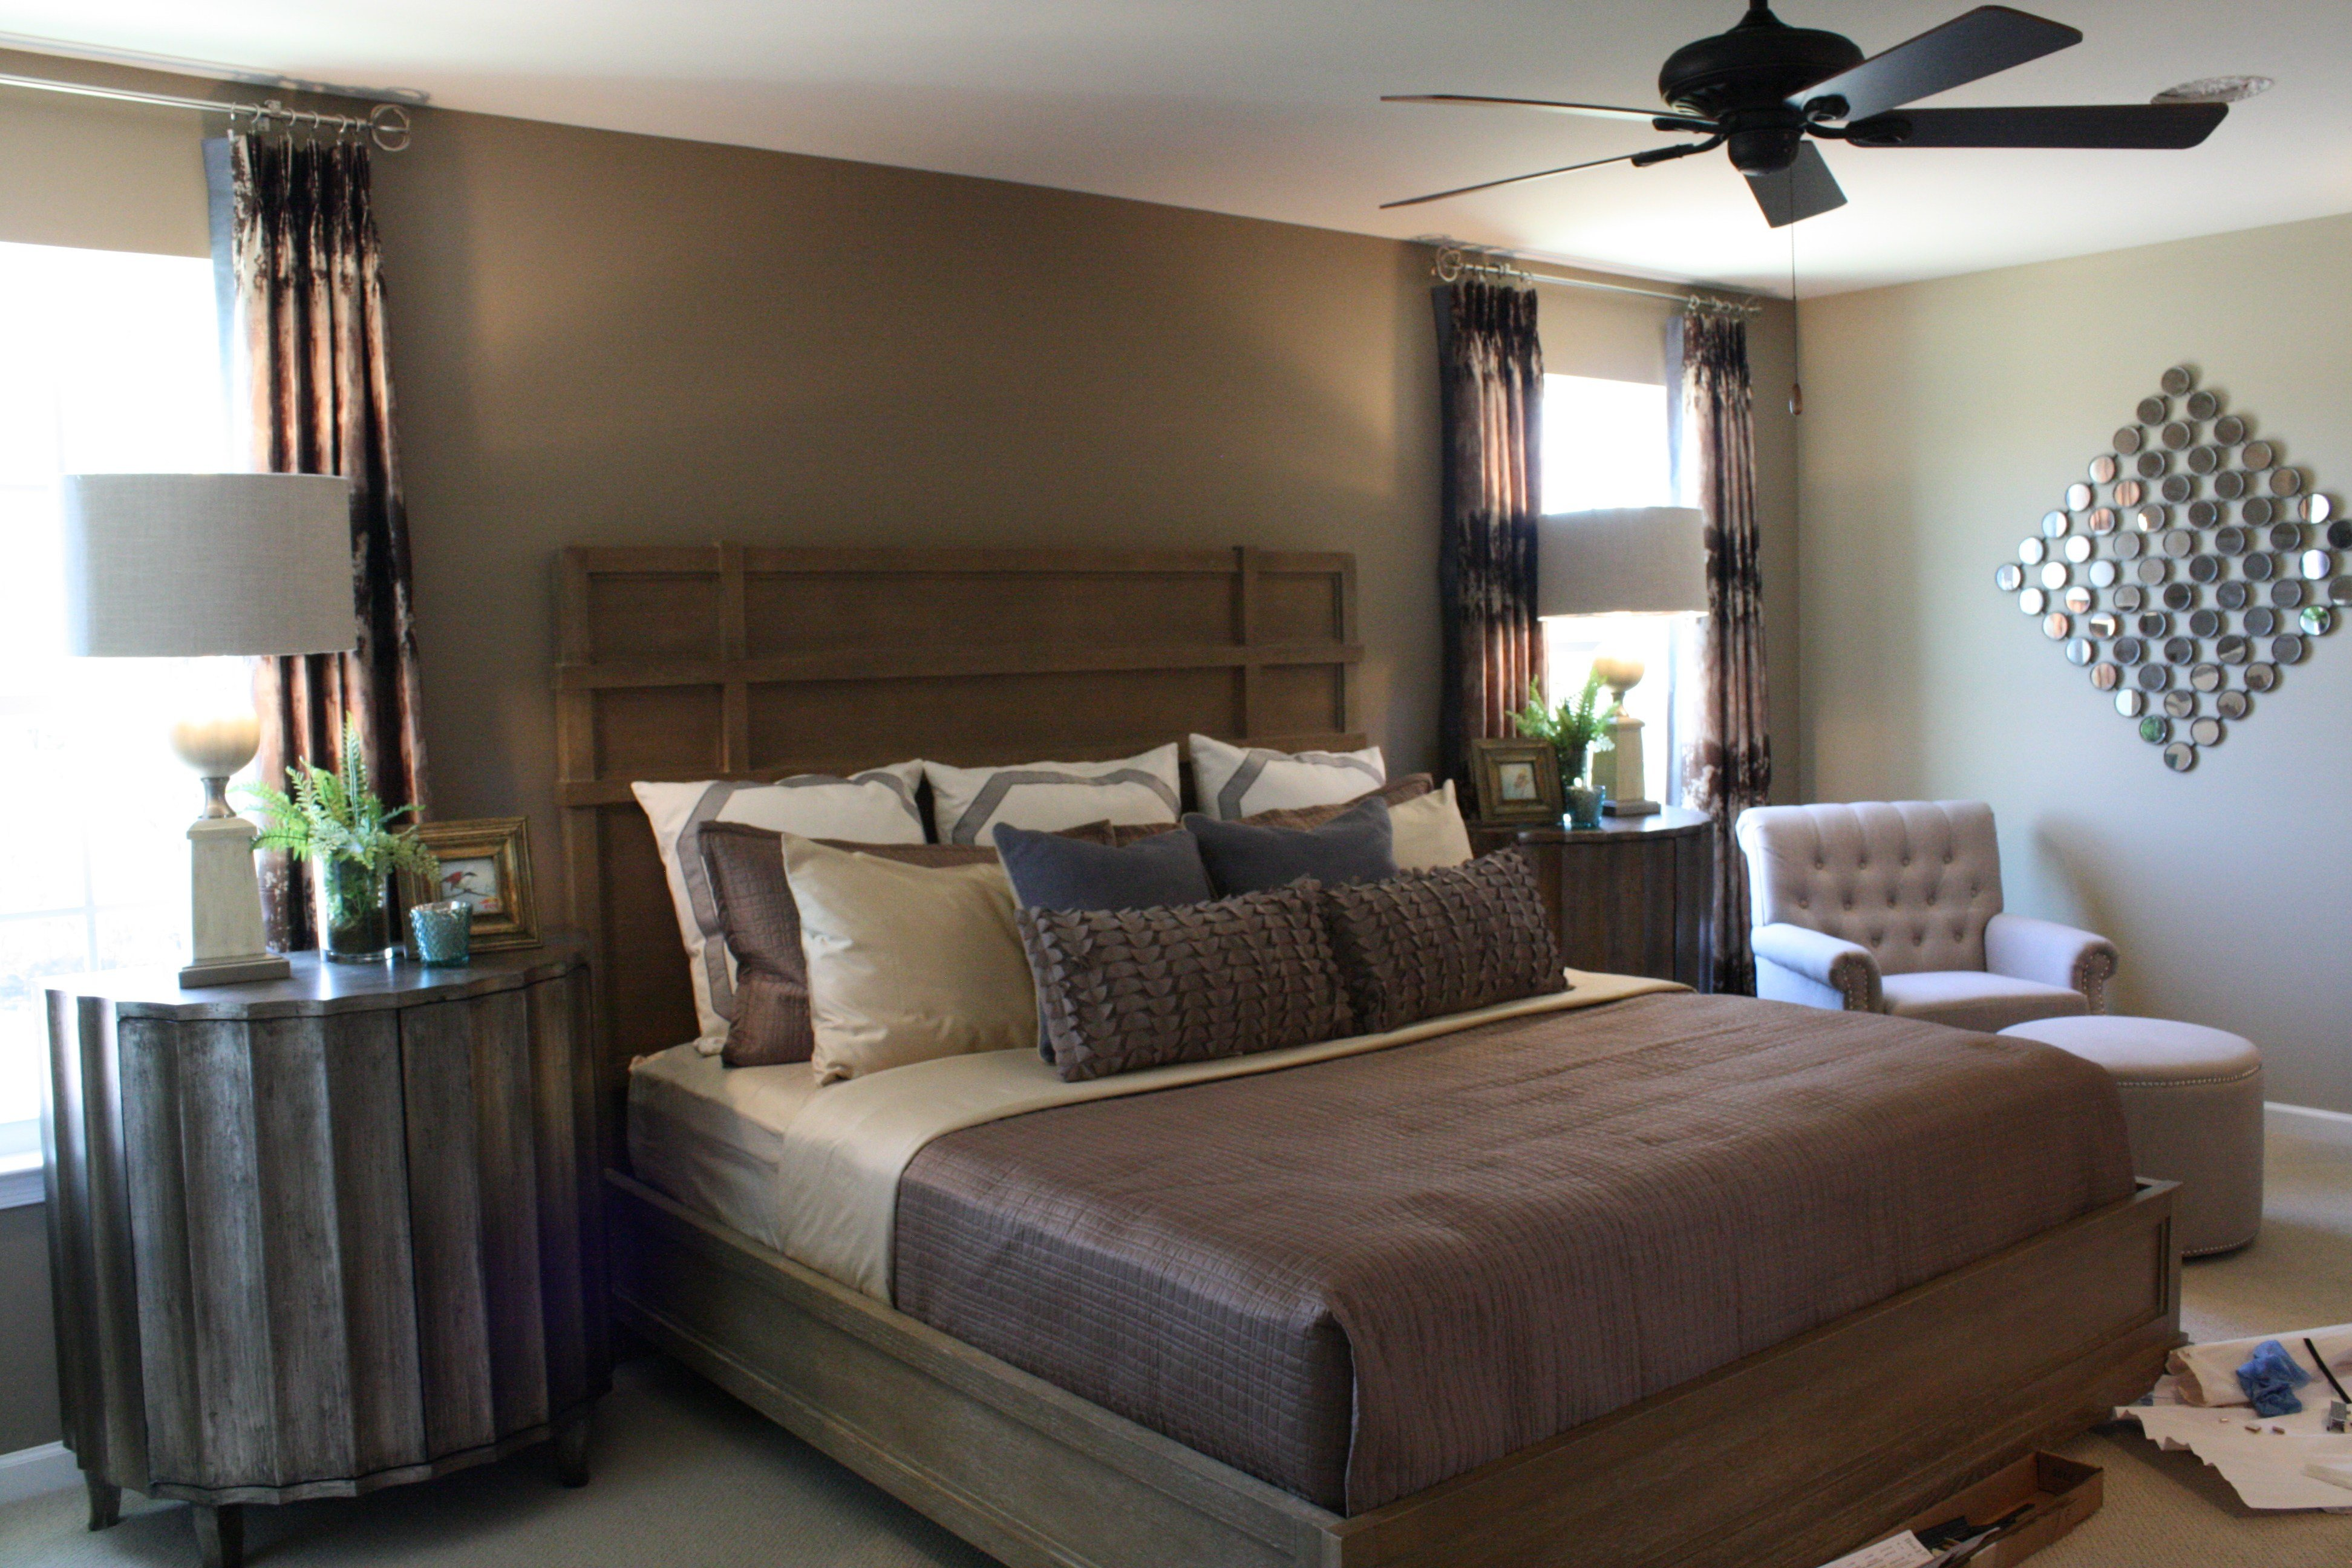 Best Chocolate Cream And Taupe Home Www Design Zeal Com With Pictures